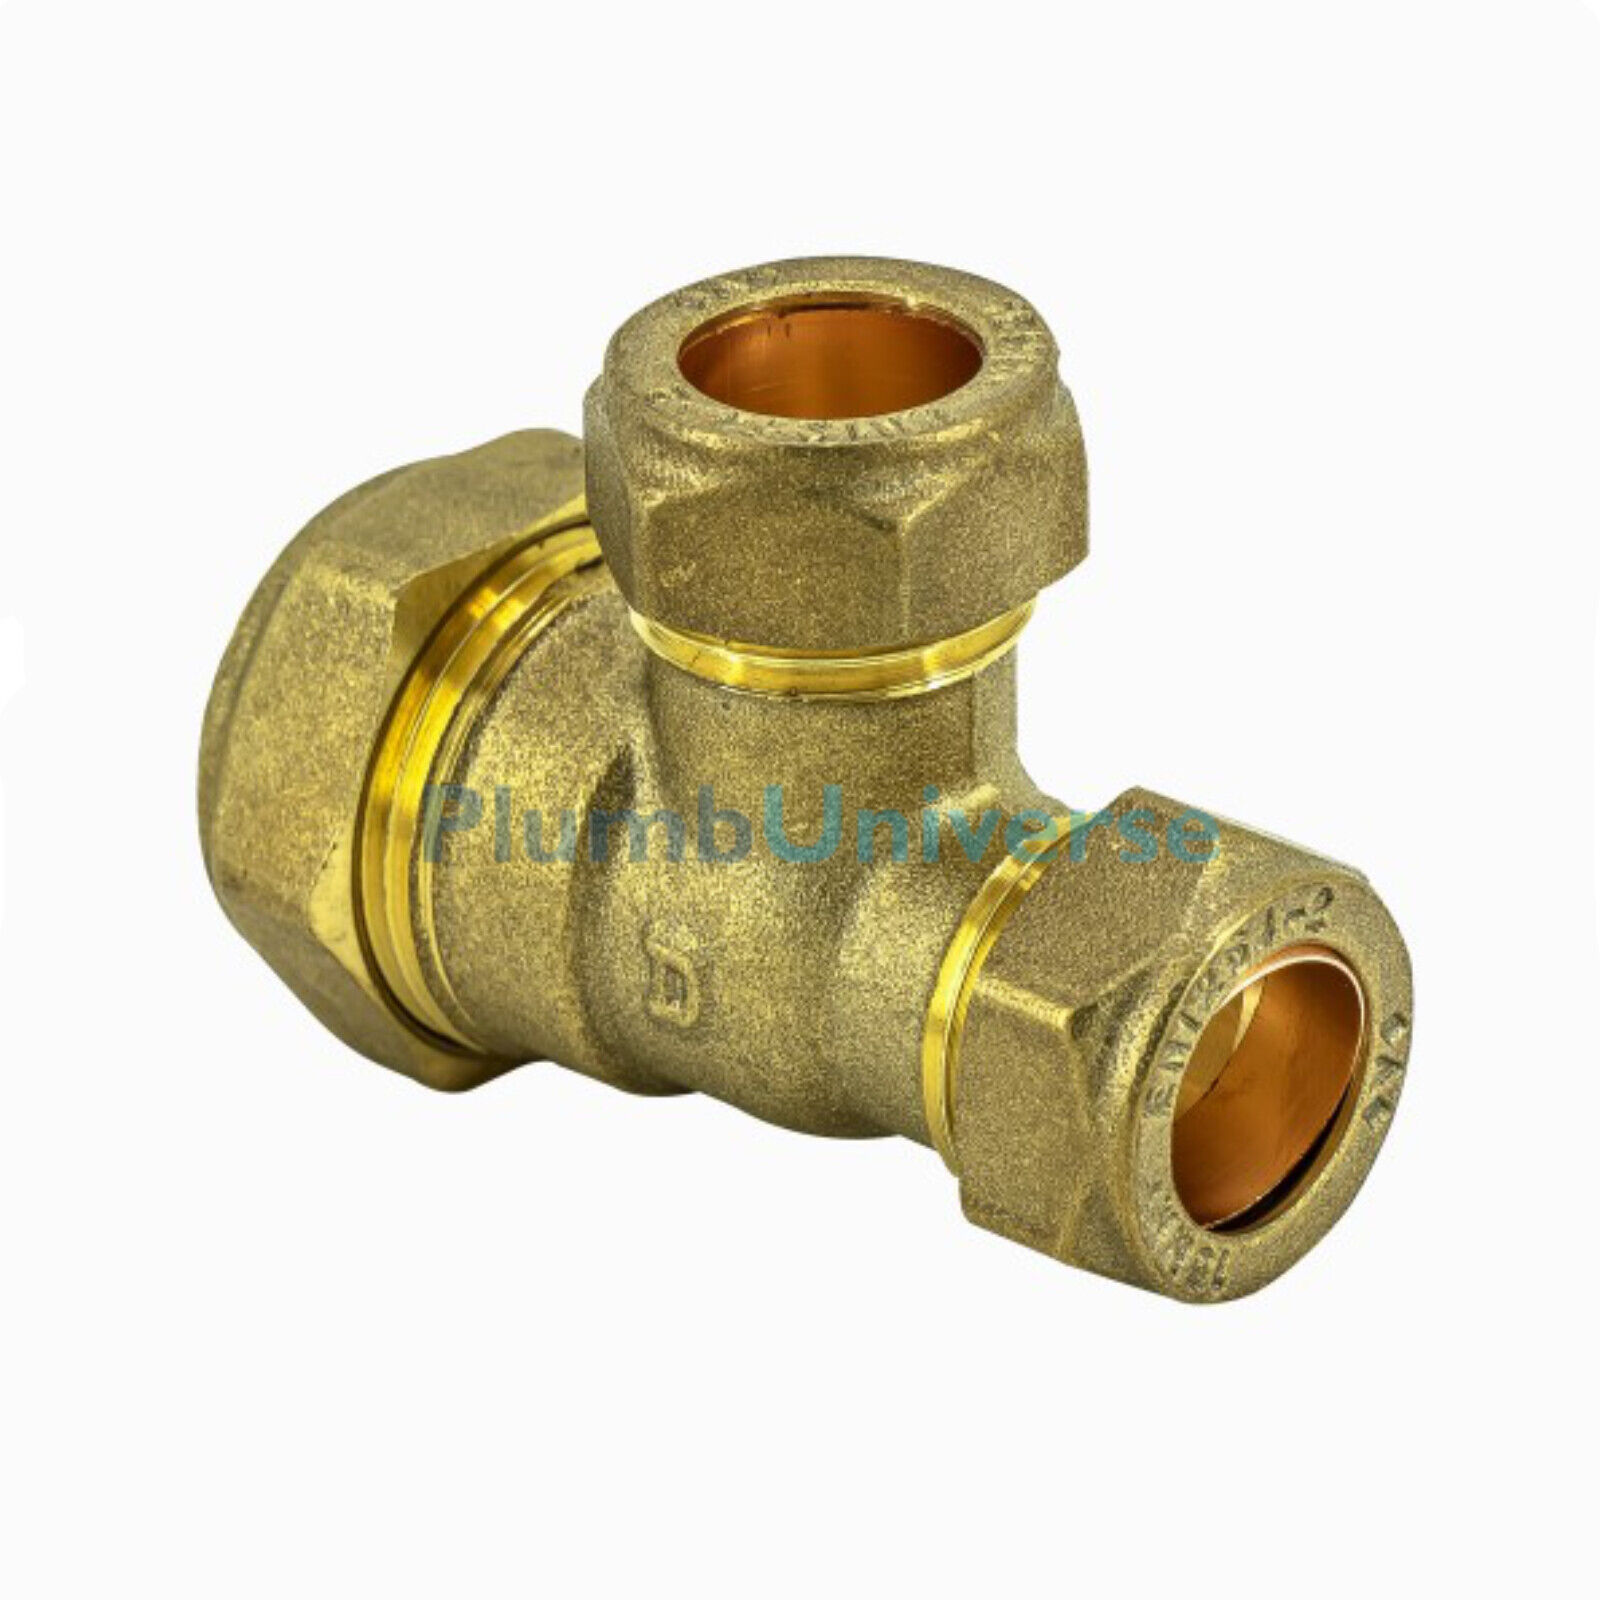 40 x BRASS COMPRESSION OLIVES PLUMBING NEW 22mm